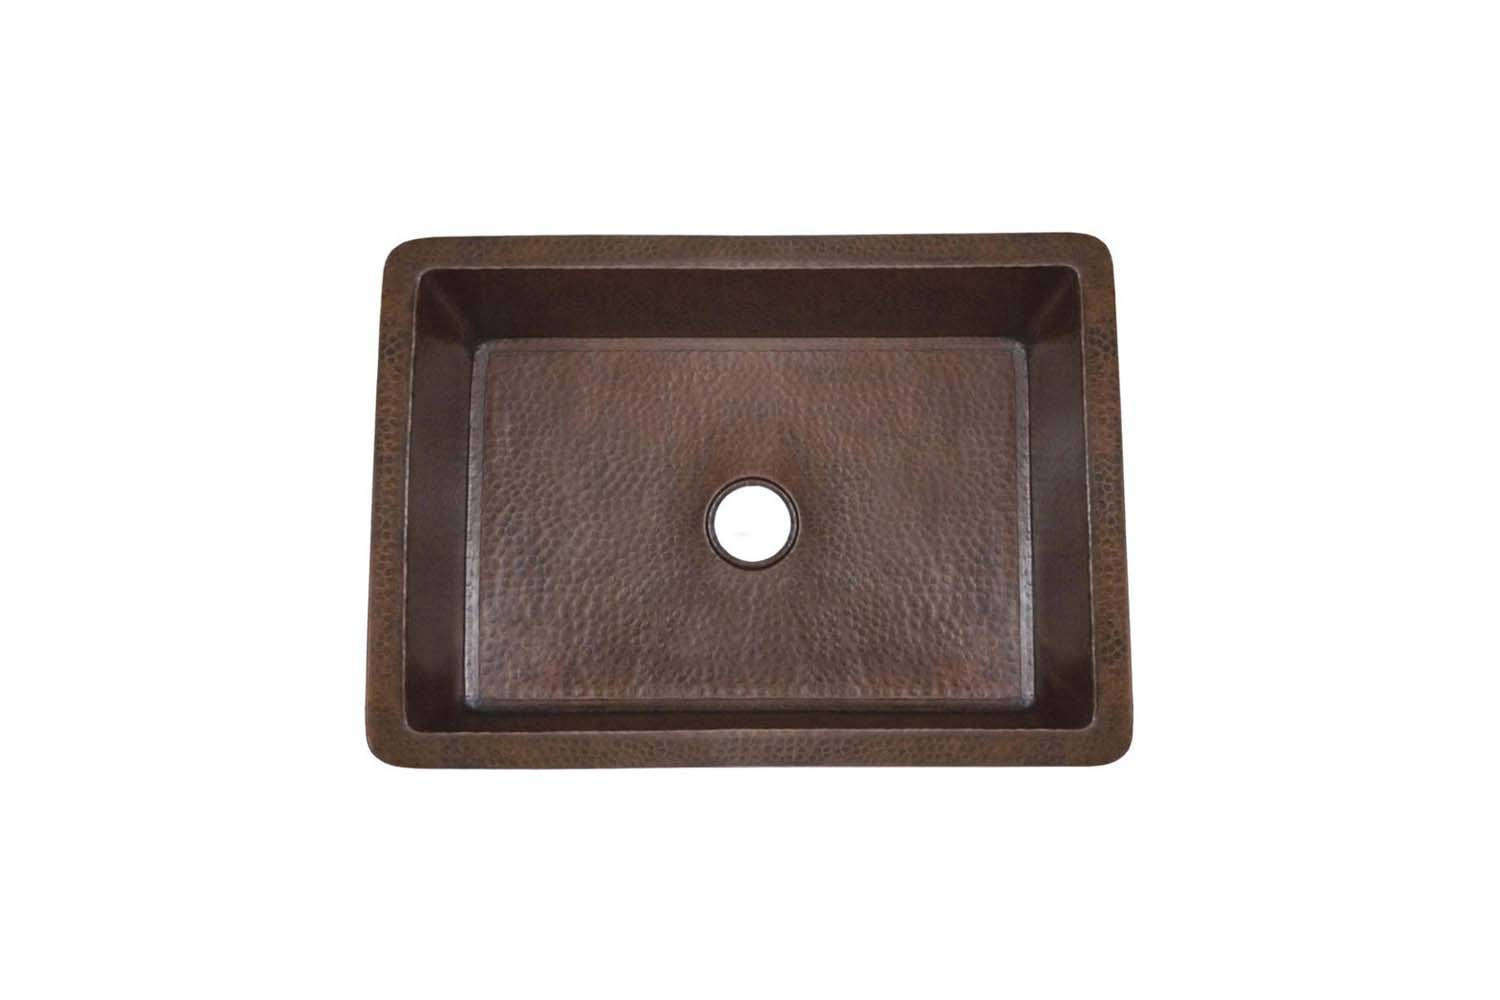 The Native Trails Cocina 30-Inch Hammered Copper Kitchen Sink is available in Antique Copper (shown) and Polished Copper; $